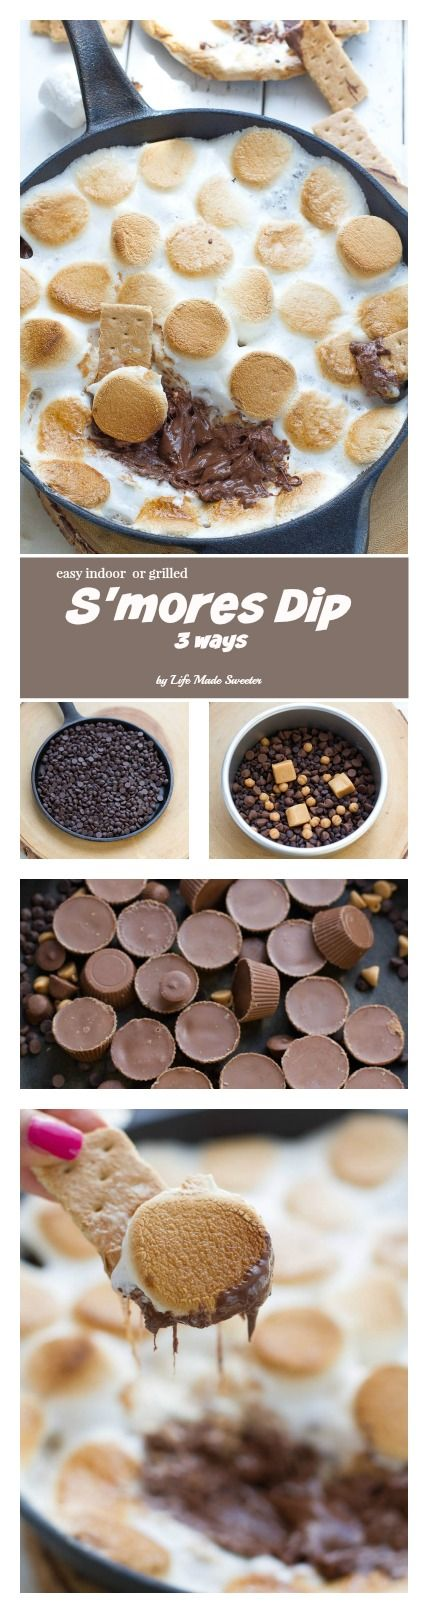 ways  amp  Dip face with Perfect just made Easy north without Indoor minutes    AMAZING  the comes gilet Best treat      together summer ingredients in Skillet campfire S     mores